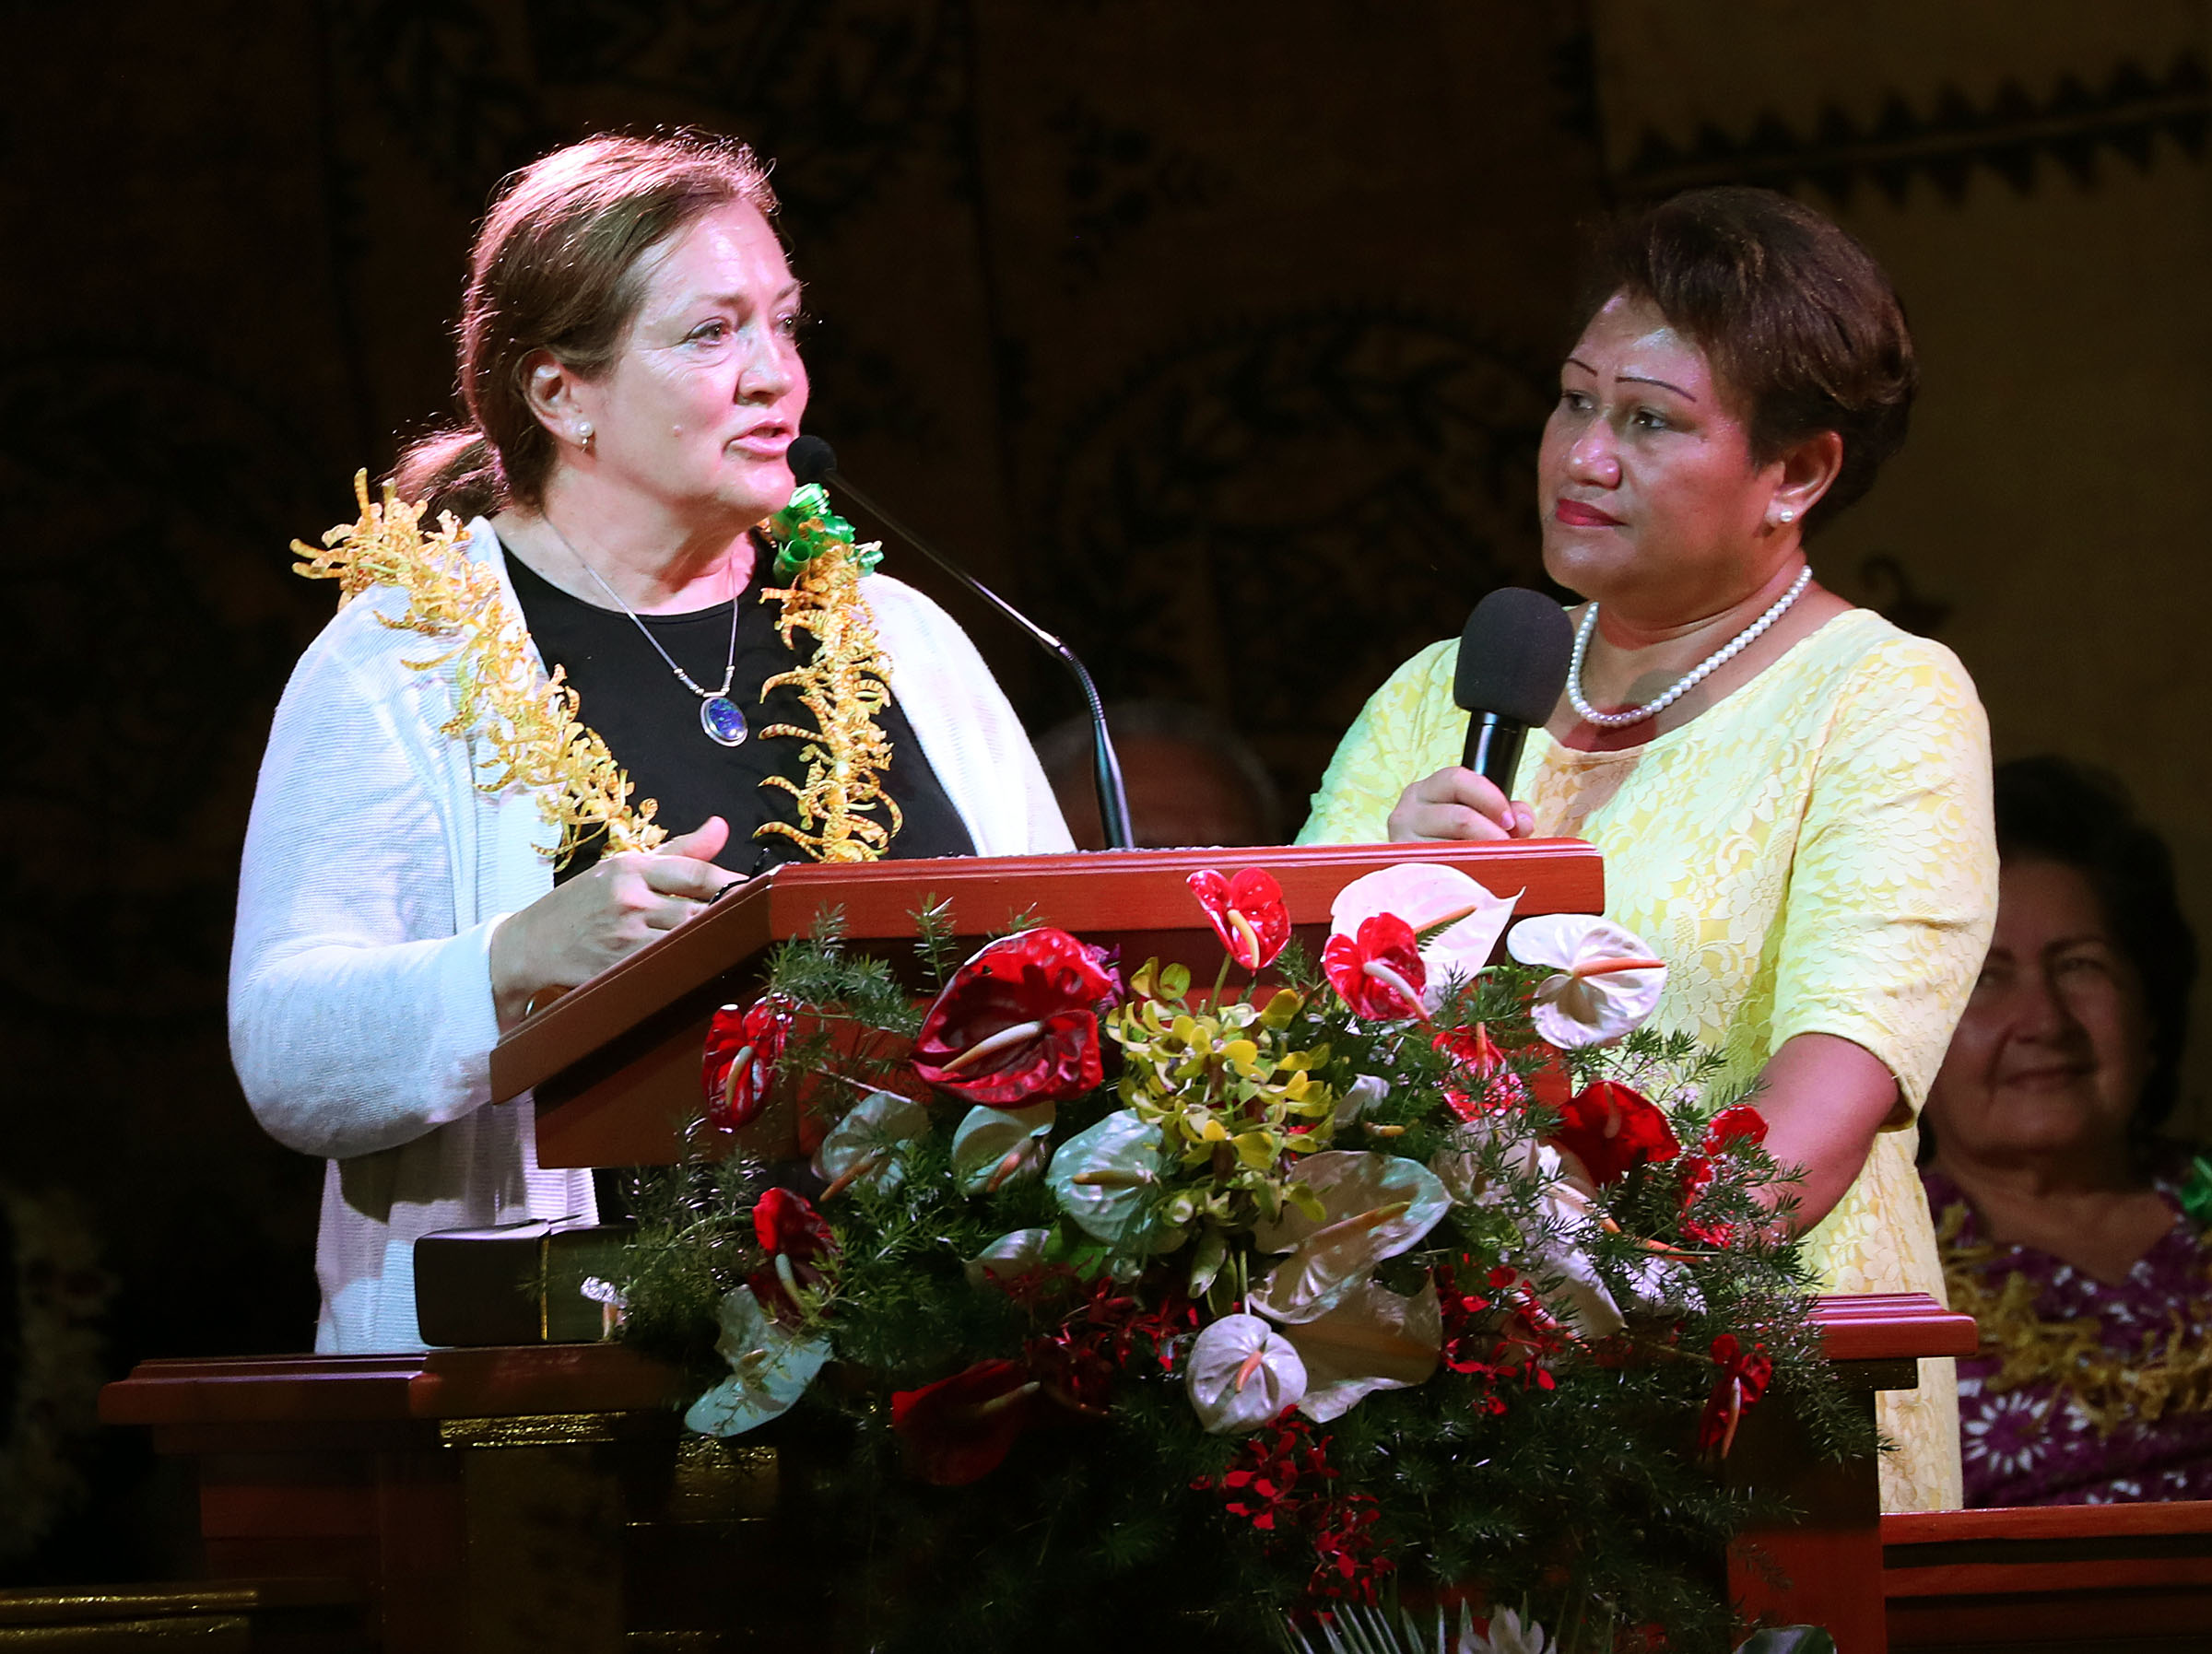 Sister Susan Gong, wife of Elder Gerrit W. Gong of the Quorum of the Twelve Apostles, speaks with an interpreter at right during a devotional with President Russell M. Nelson of The Church of Jesus Christ of Latter-day Saints in Apia, Samoa, on Saturday, May 18, 2019.